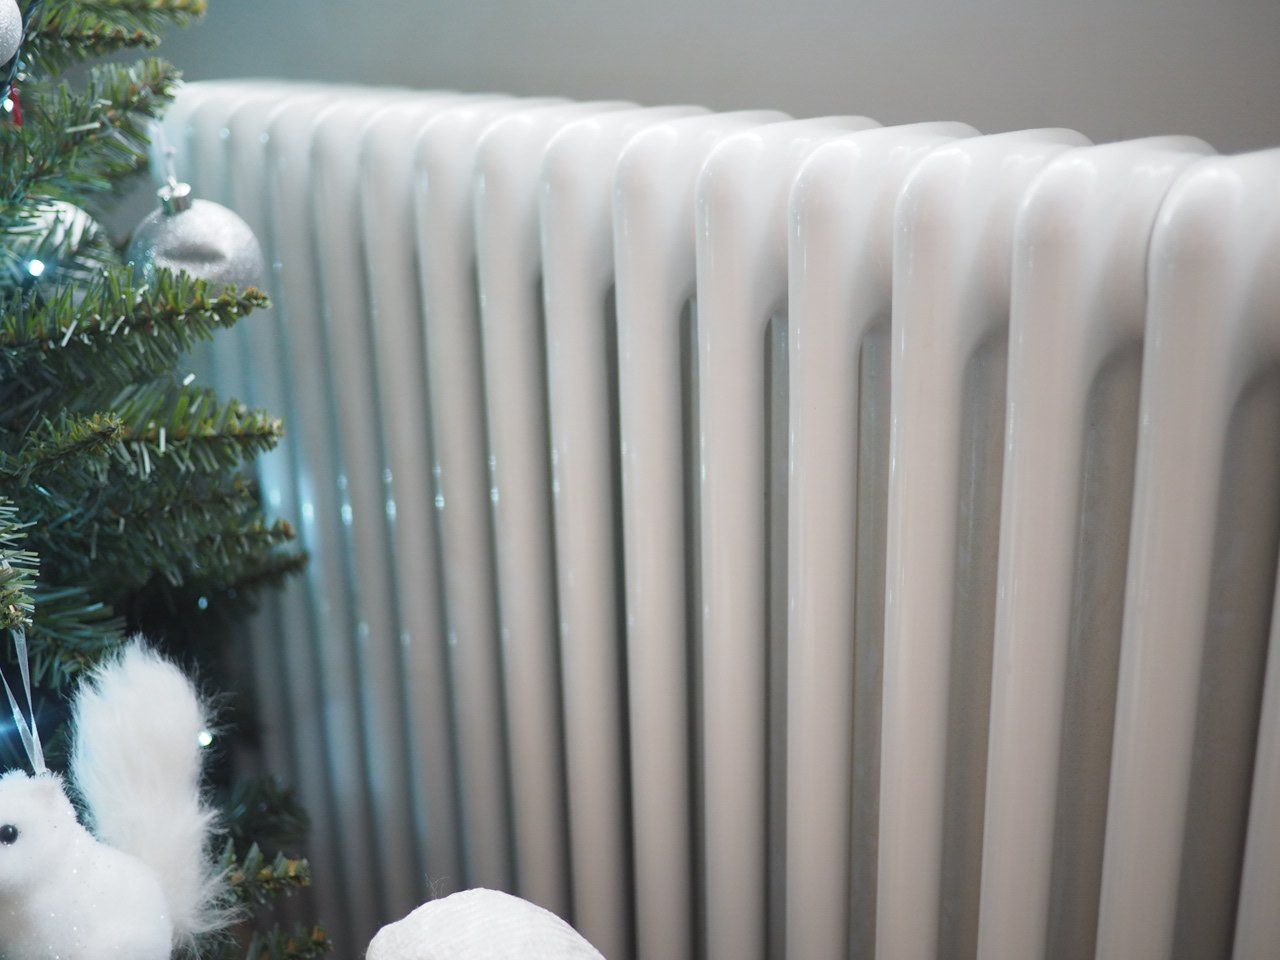 5 Ways to Improve the Efficiency of Your Central Heating System